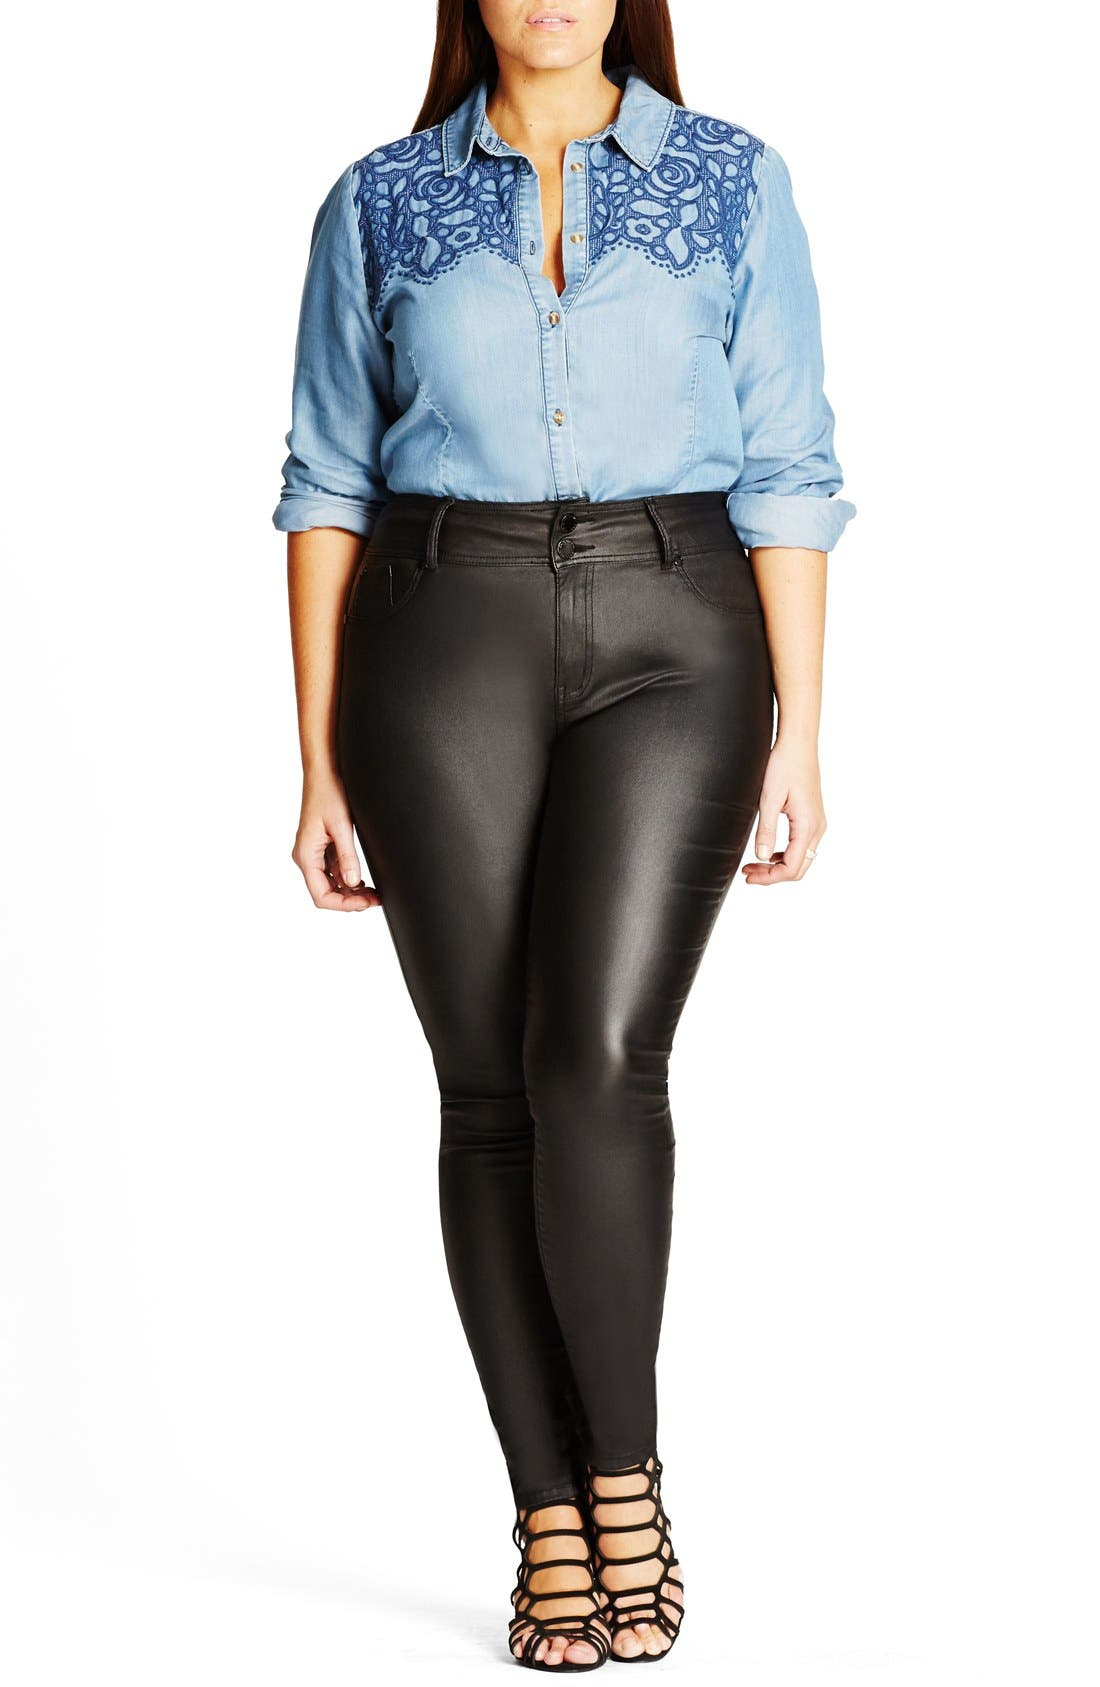 Alternate Image 1 Selected - City Chic Skylar Coated Super Stretch Skinny Jeans (Plus Size)